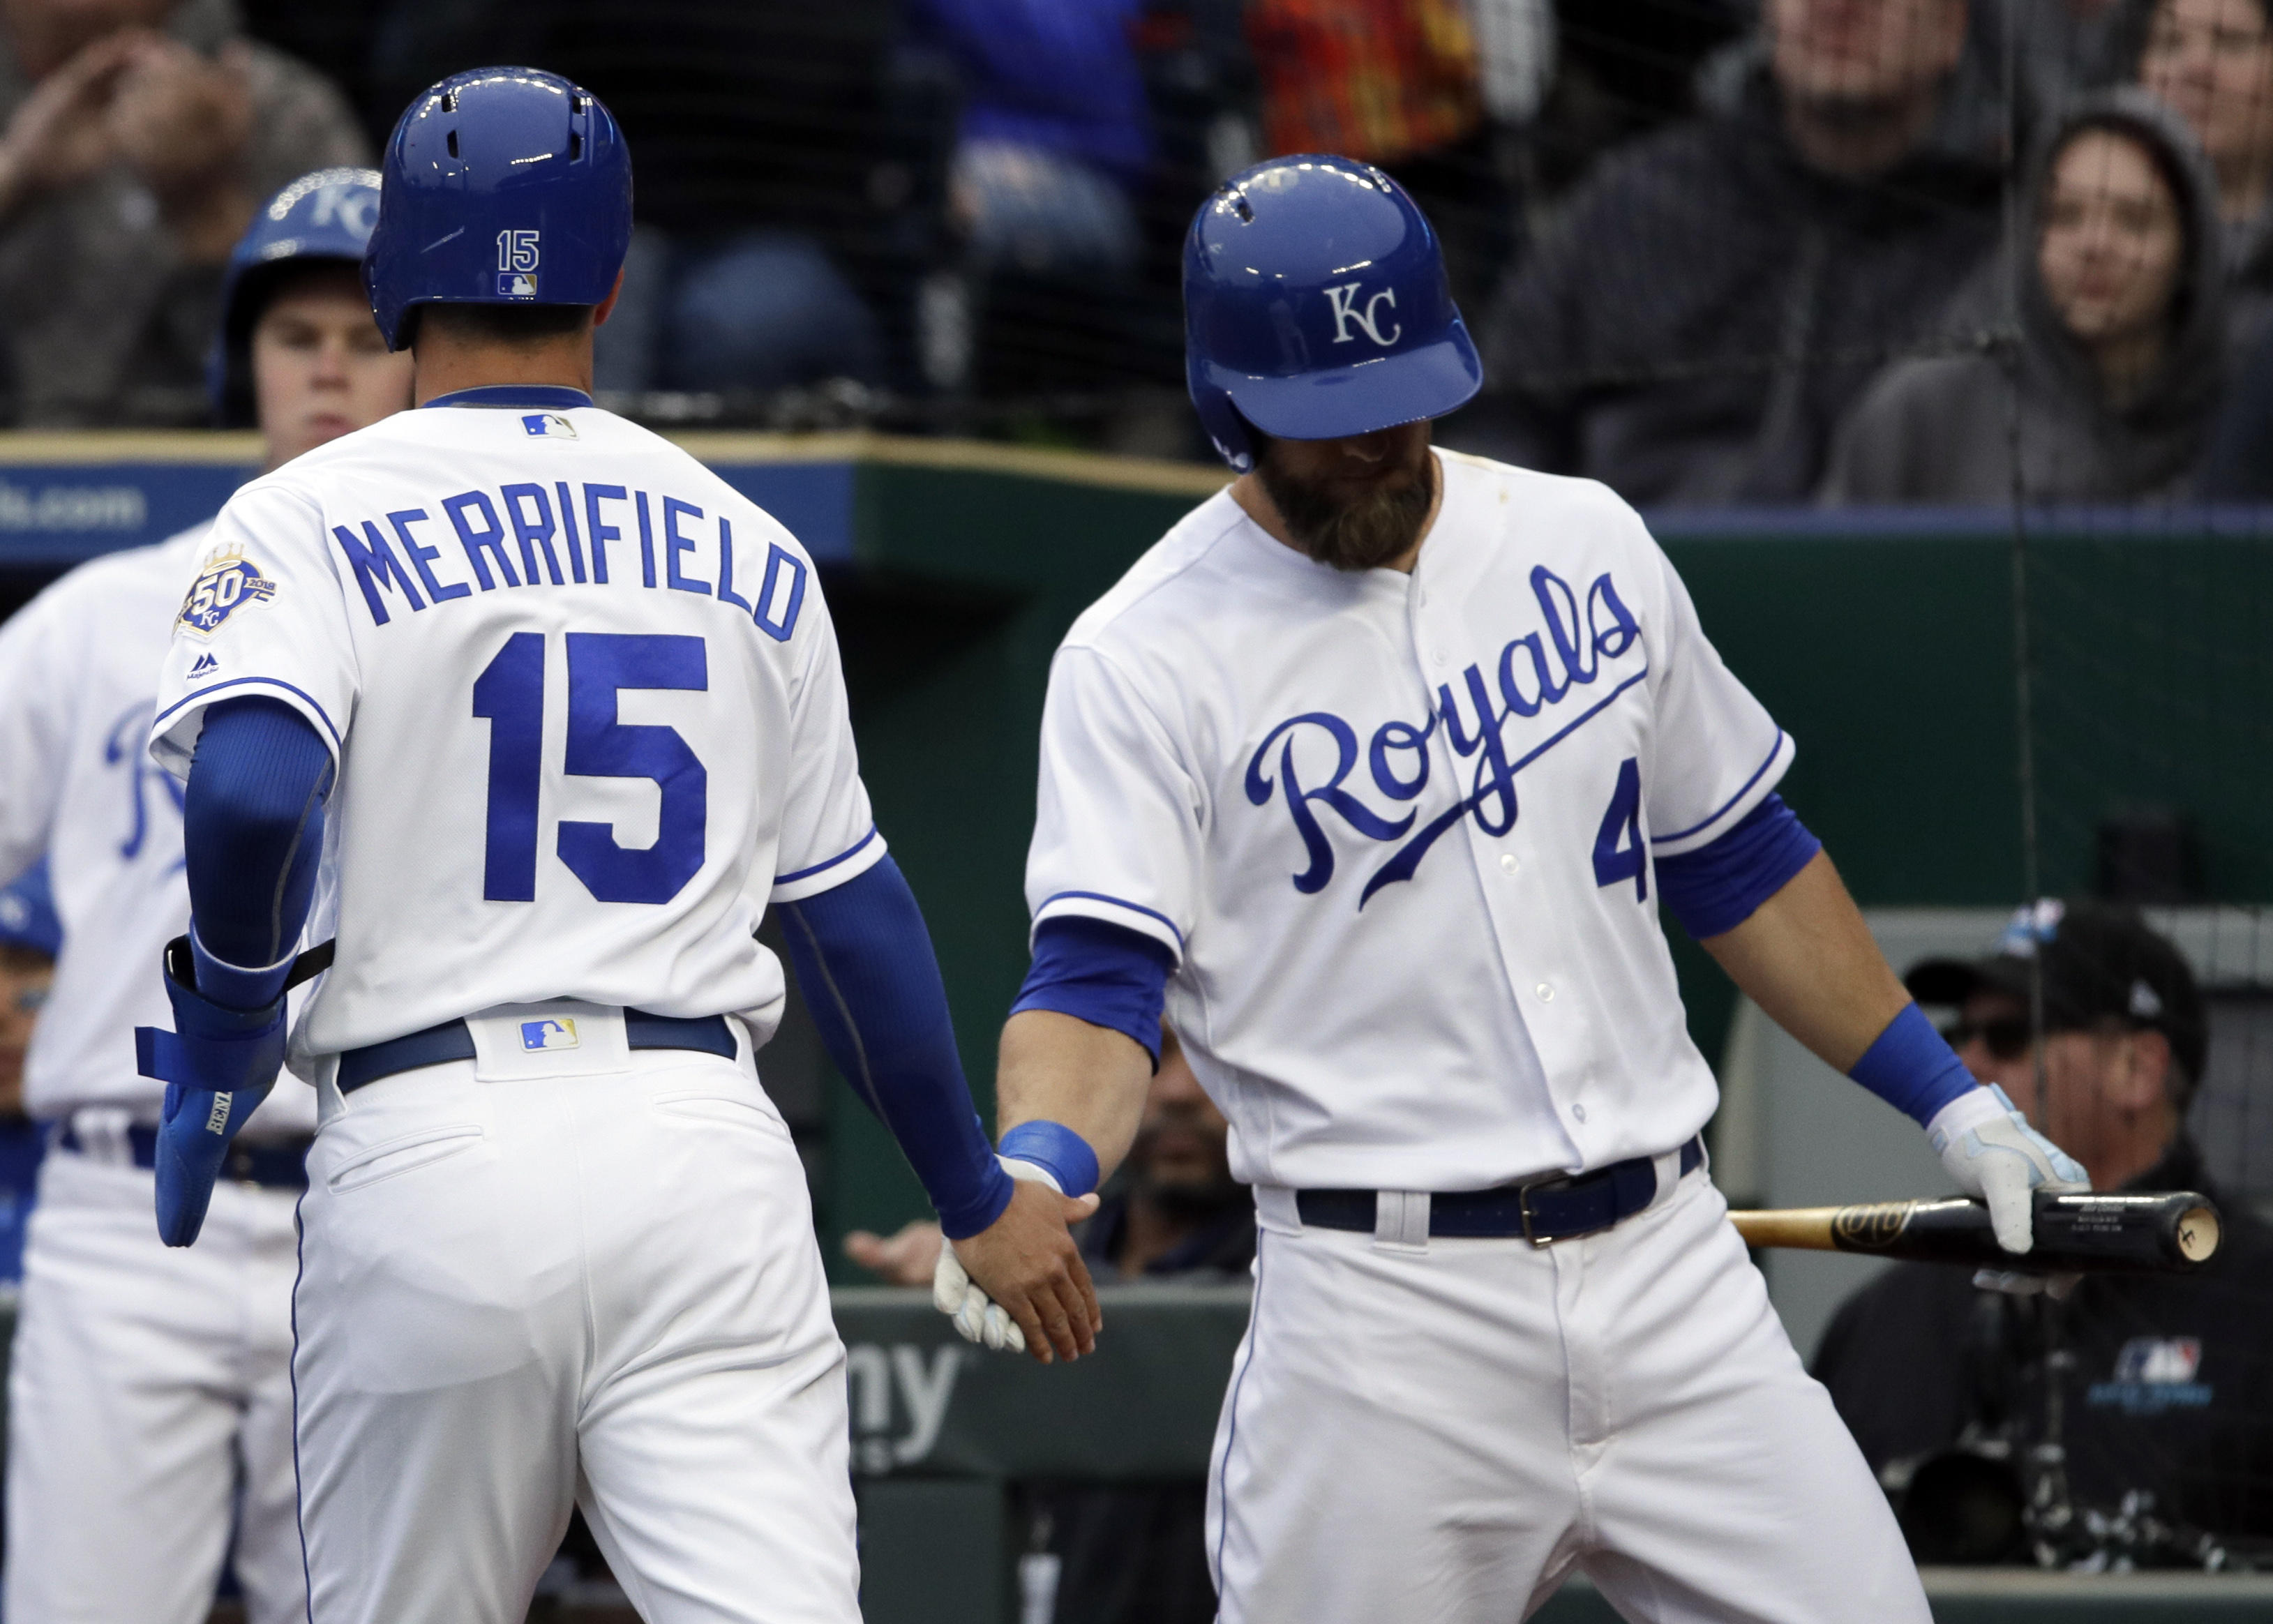 Whit Merrifield, Alex Gordon